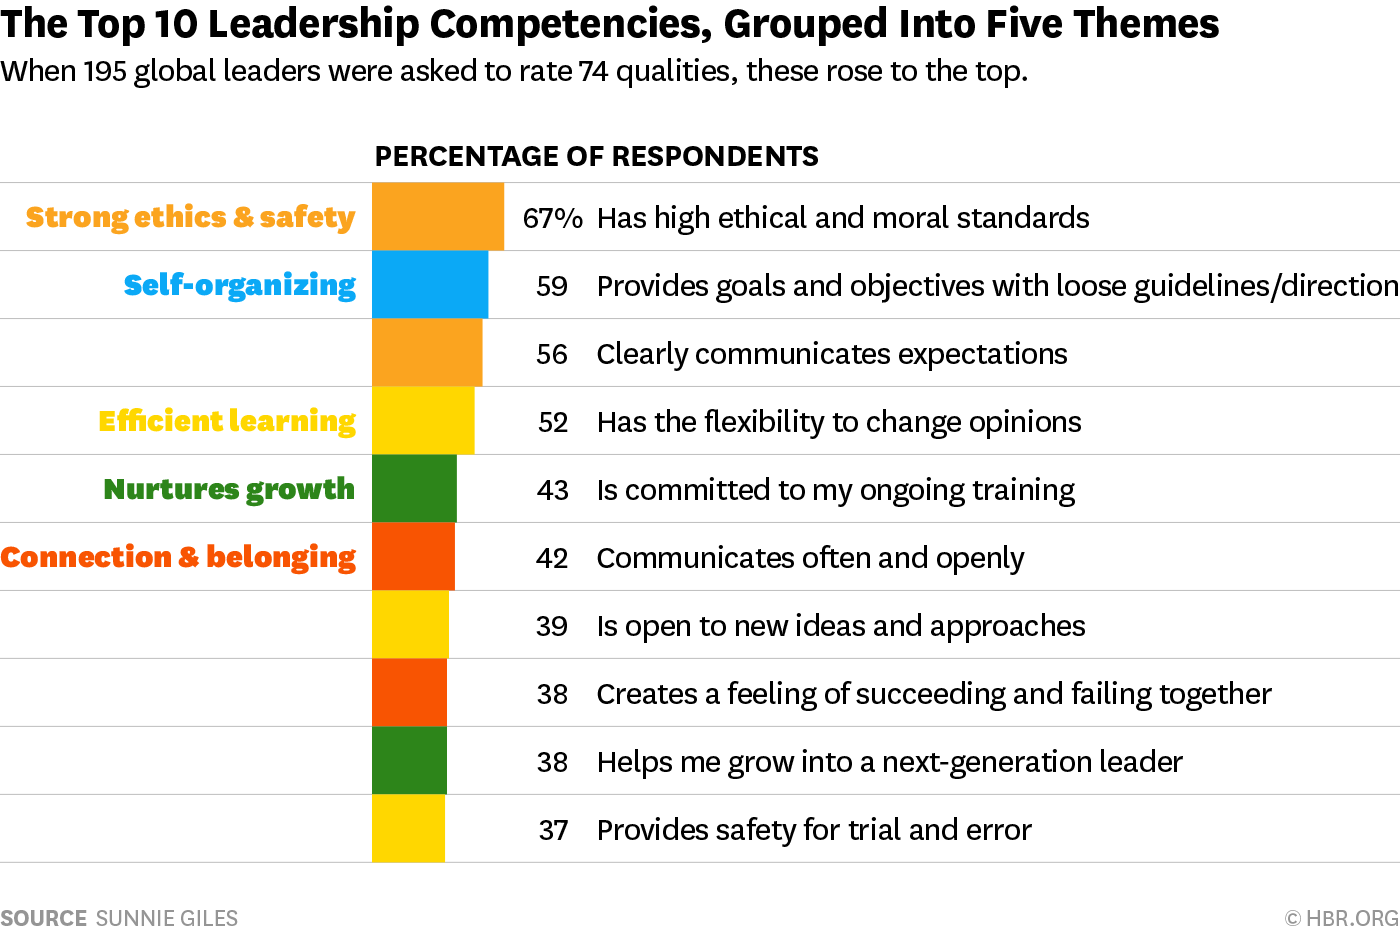 effective leadership traits in correcting organizational 8 traits harvard says true leaders need to navigate today's 'volatile, uncertain'  even before any definitive information is available, effective leaders must  rather, they view it as a way to benefit the organization and create  you're probably overpaying at amazon – this genius trick will fix thathoney.